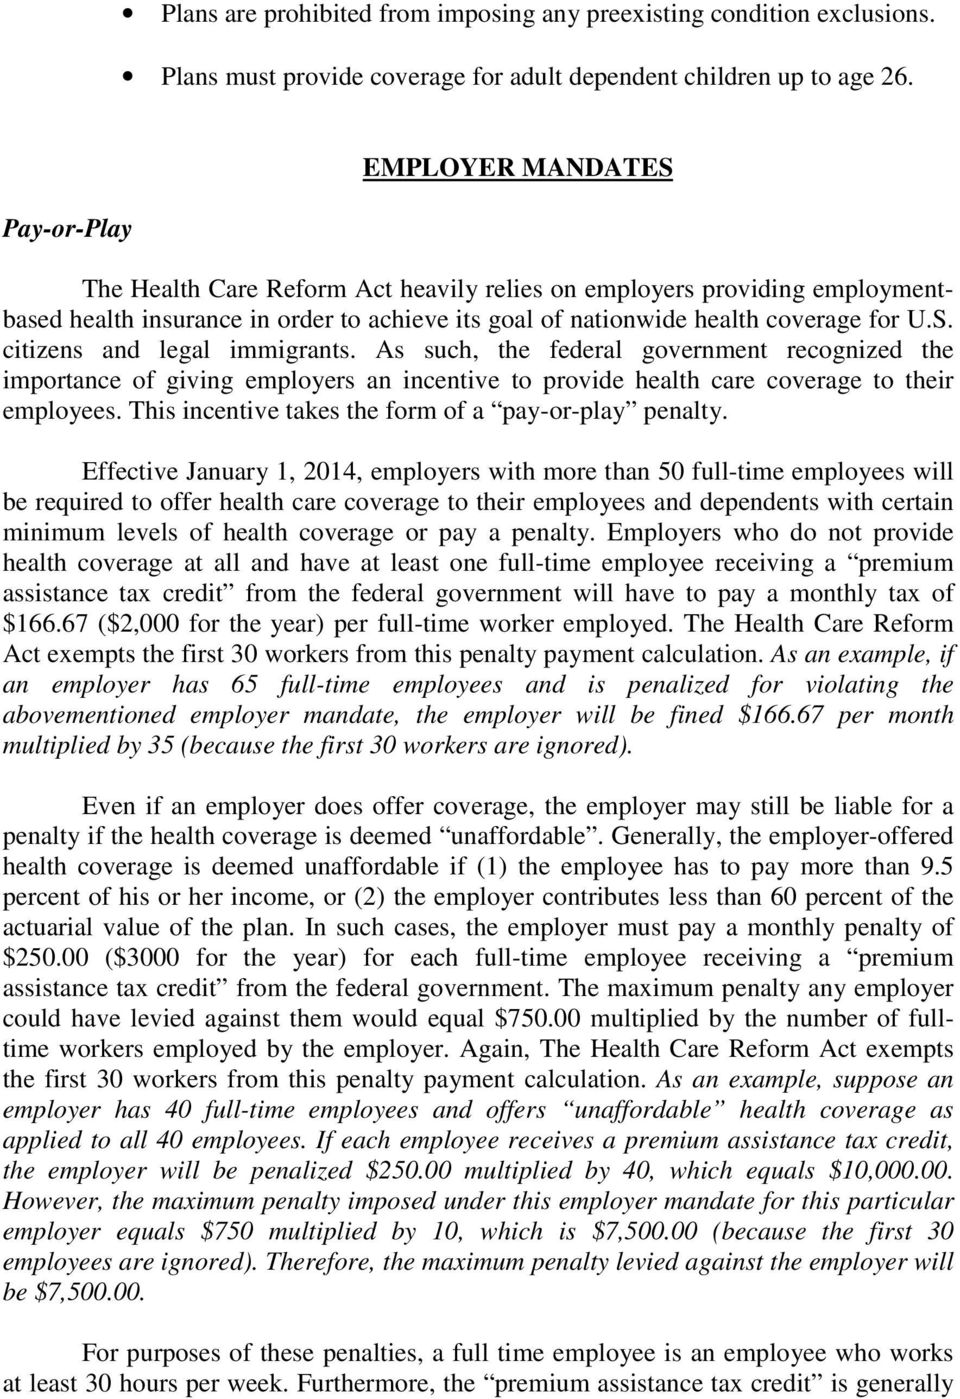 As such, the federal government recognized the importance of giving employers an incentive to provide health care coverage to their employees. This incentive takes the form of a pay-or-play penalty.